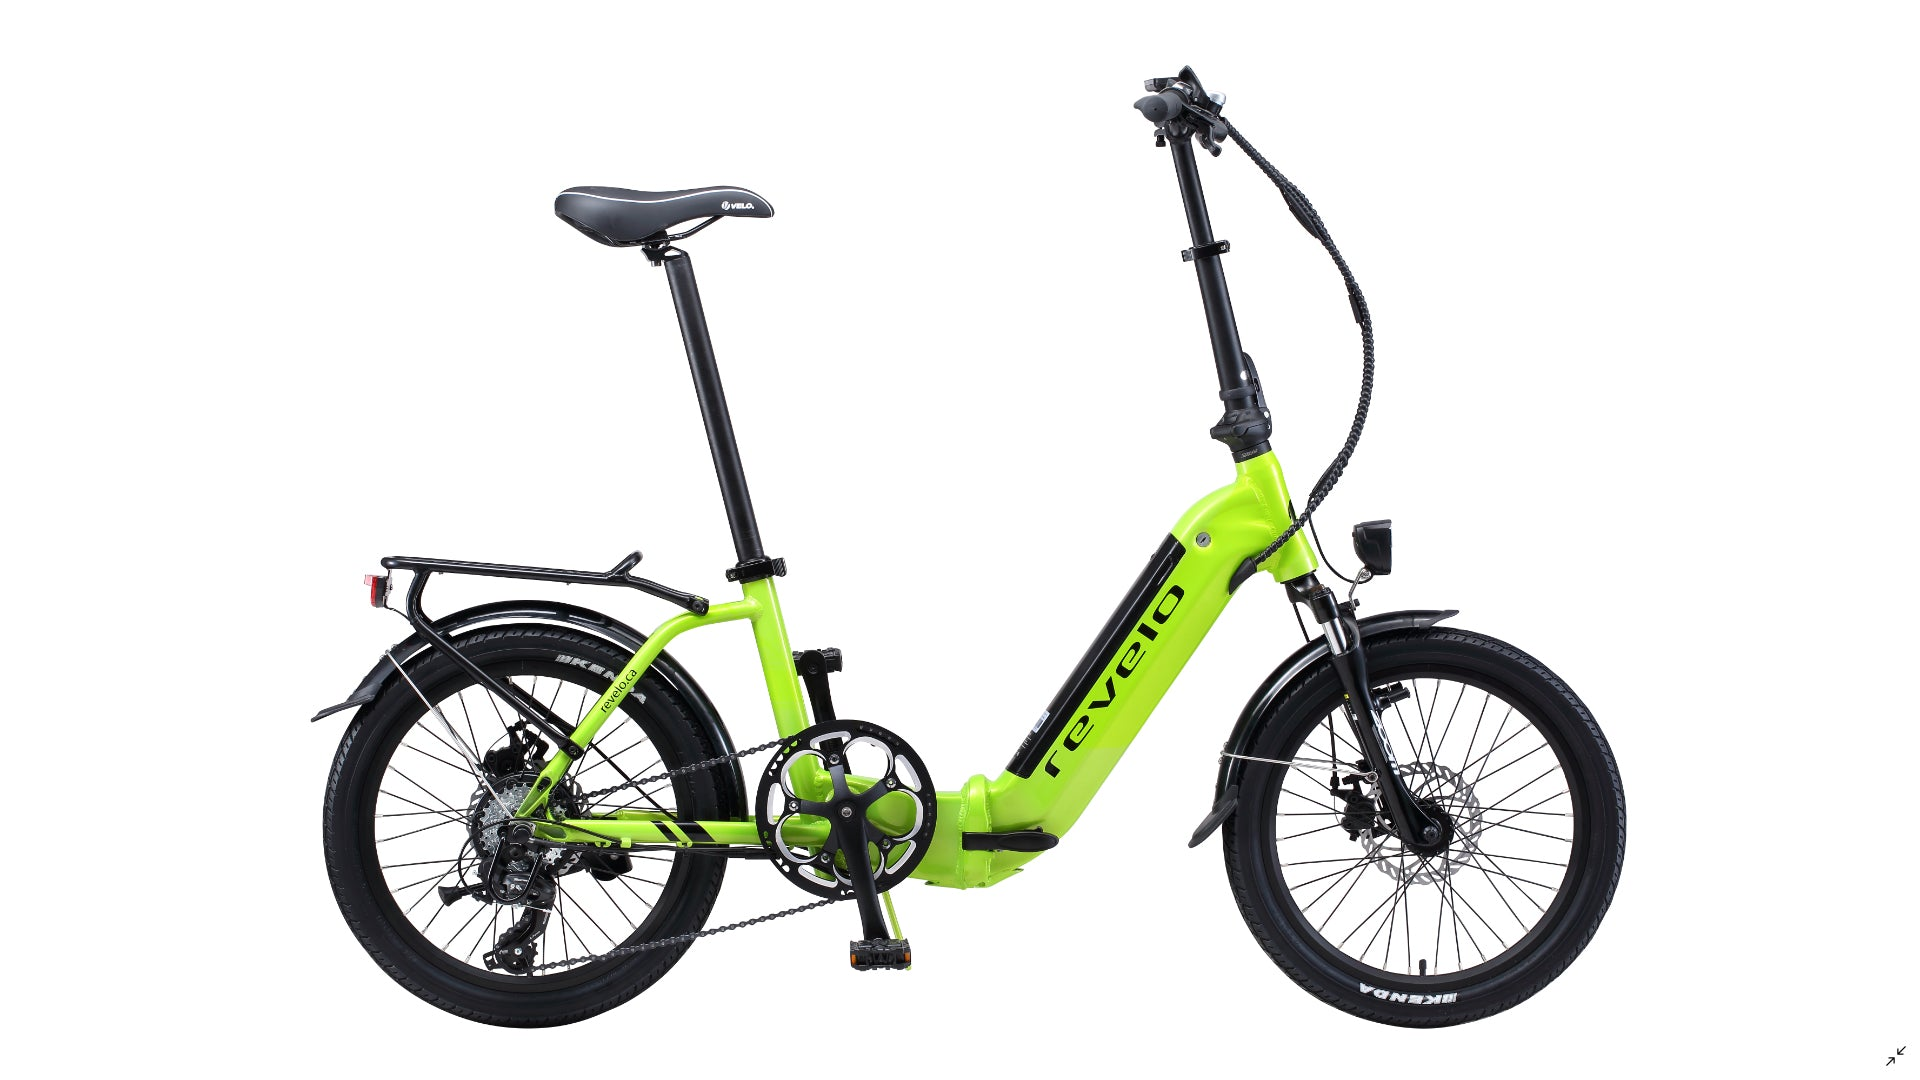 Revelo FLEX folding bike combines extreme portability with a robust riding experience